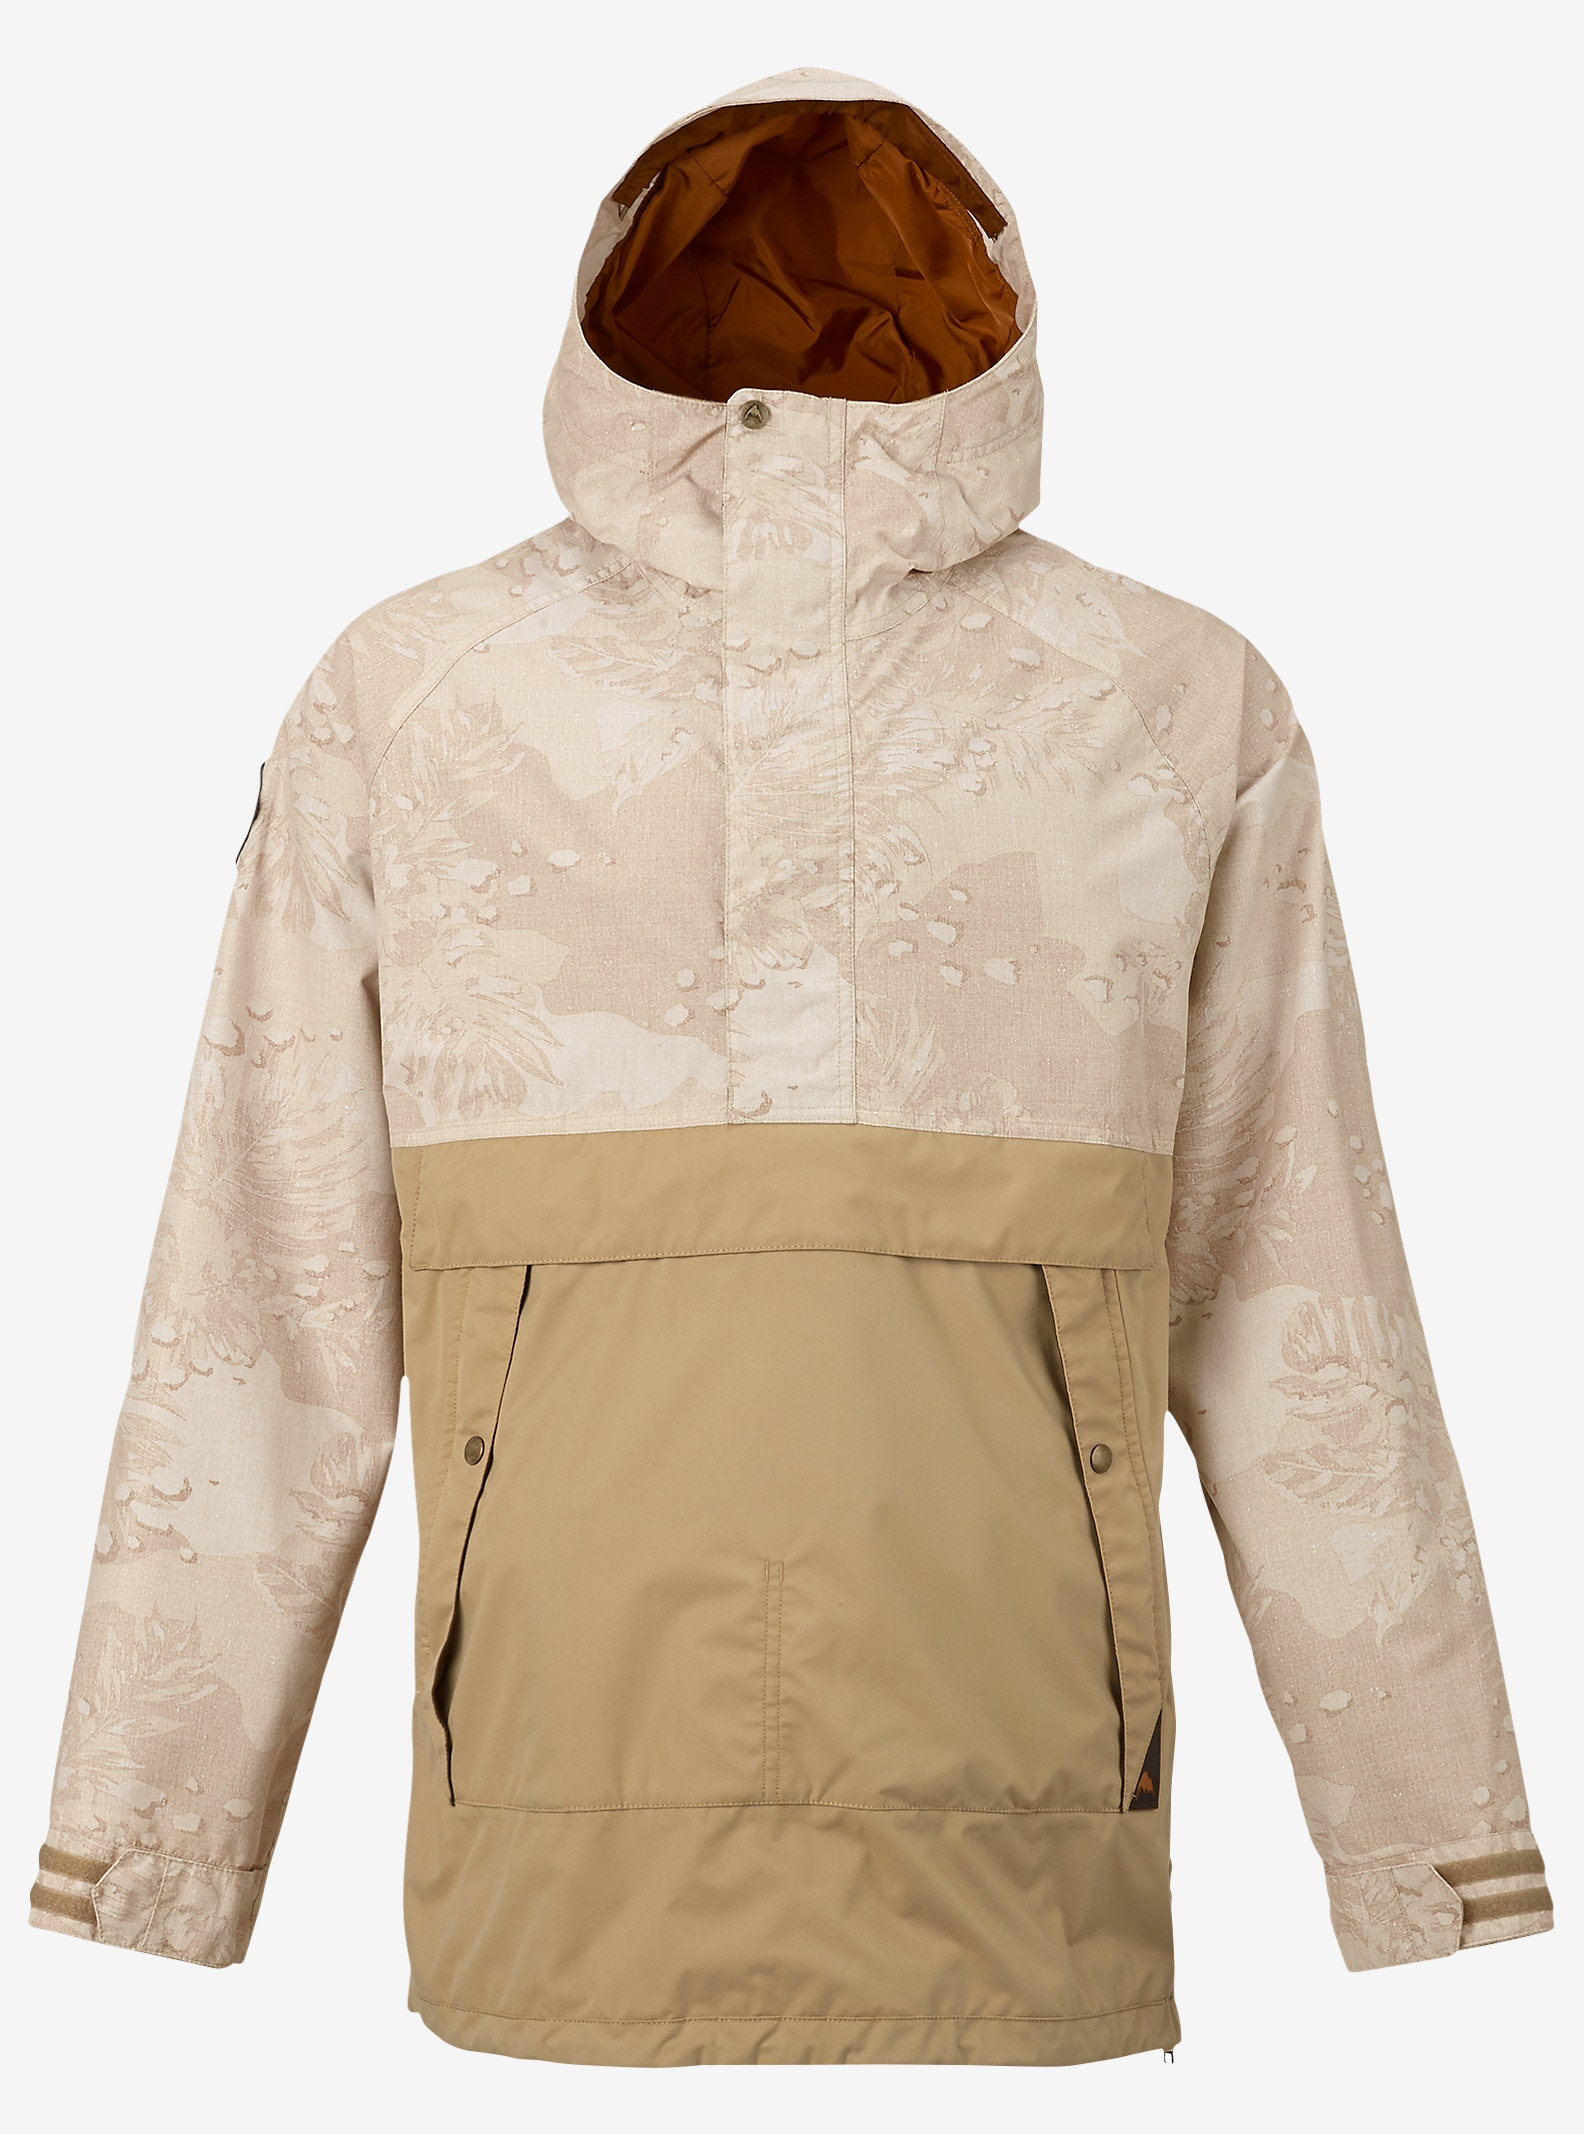 Burton Rambler Anorak Jacket shown in Hawaiian Desert / Kelp